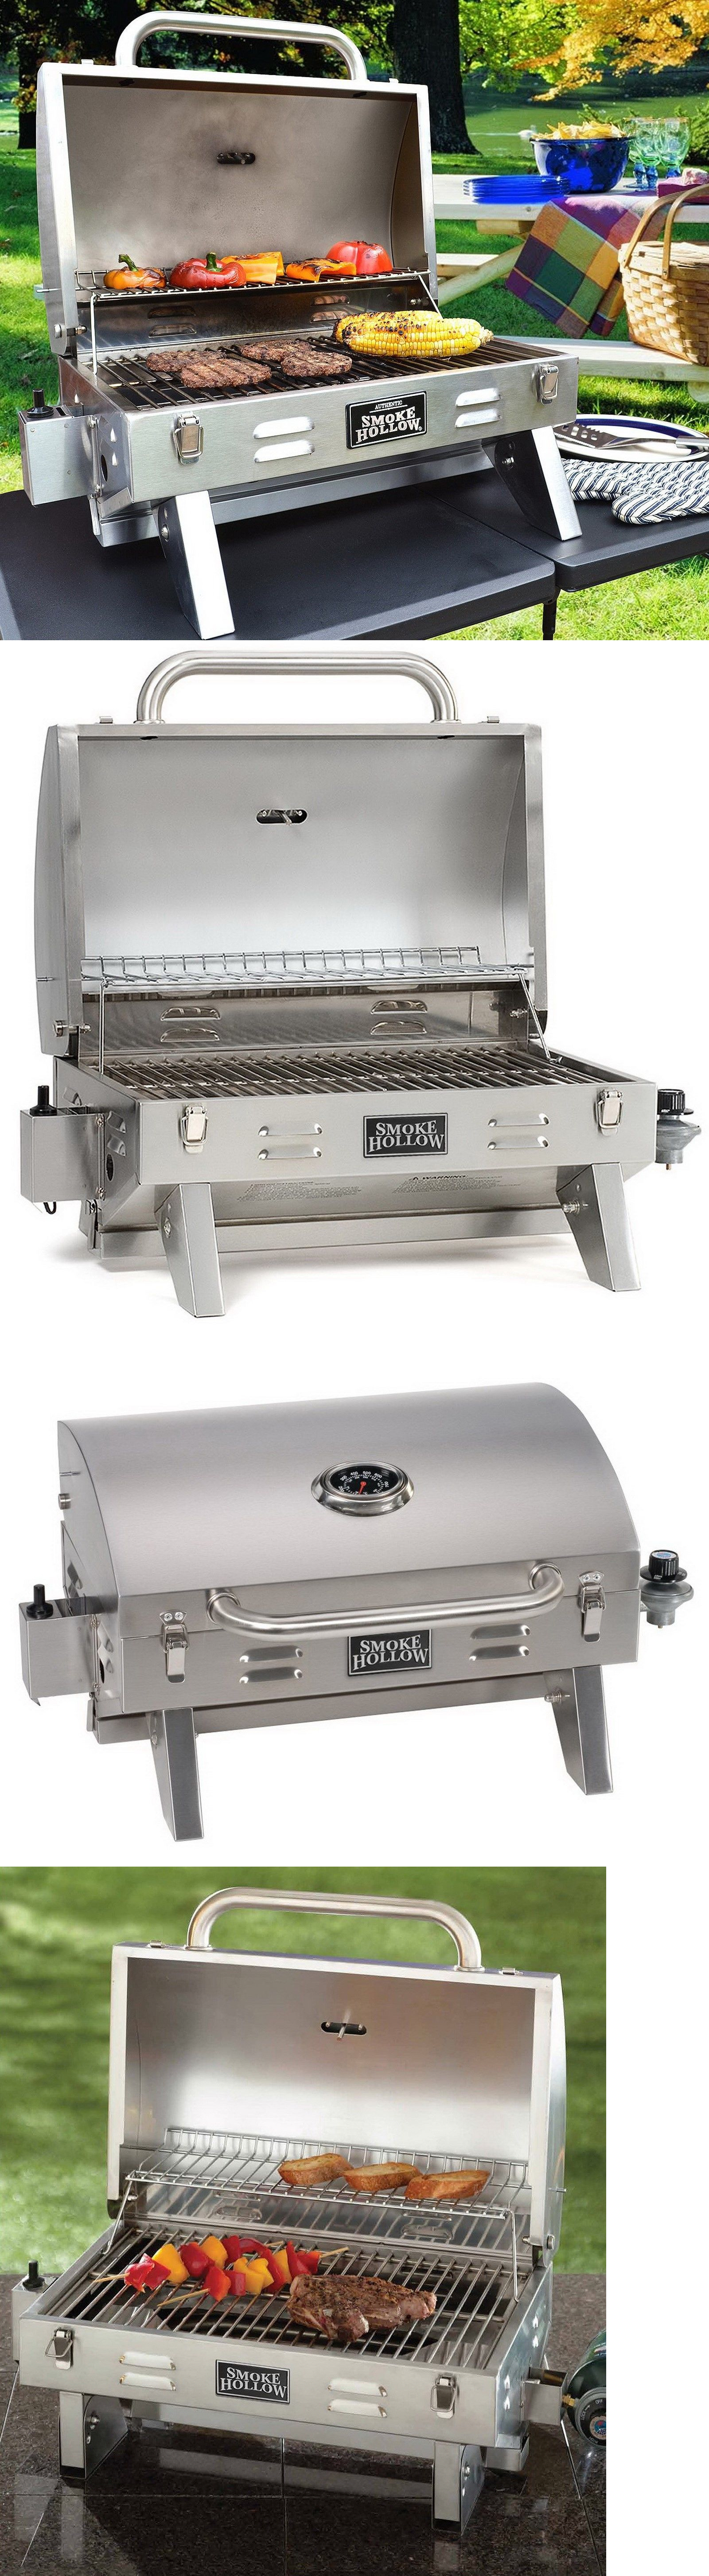 Barbecues Grills And Smokers 151621: New Portable Stainless Steel Gas Grill  Tailgate Camping Grill Propane